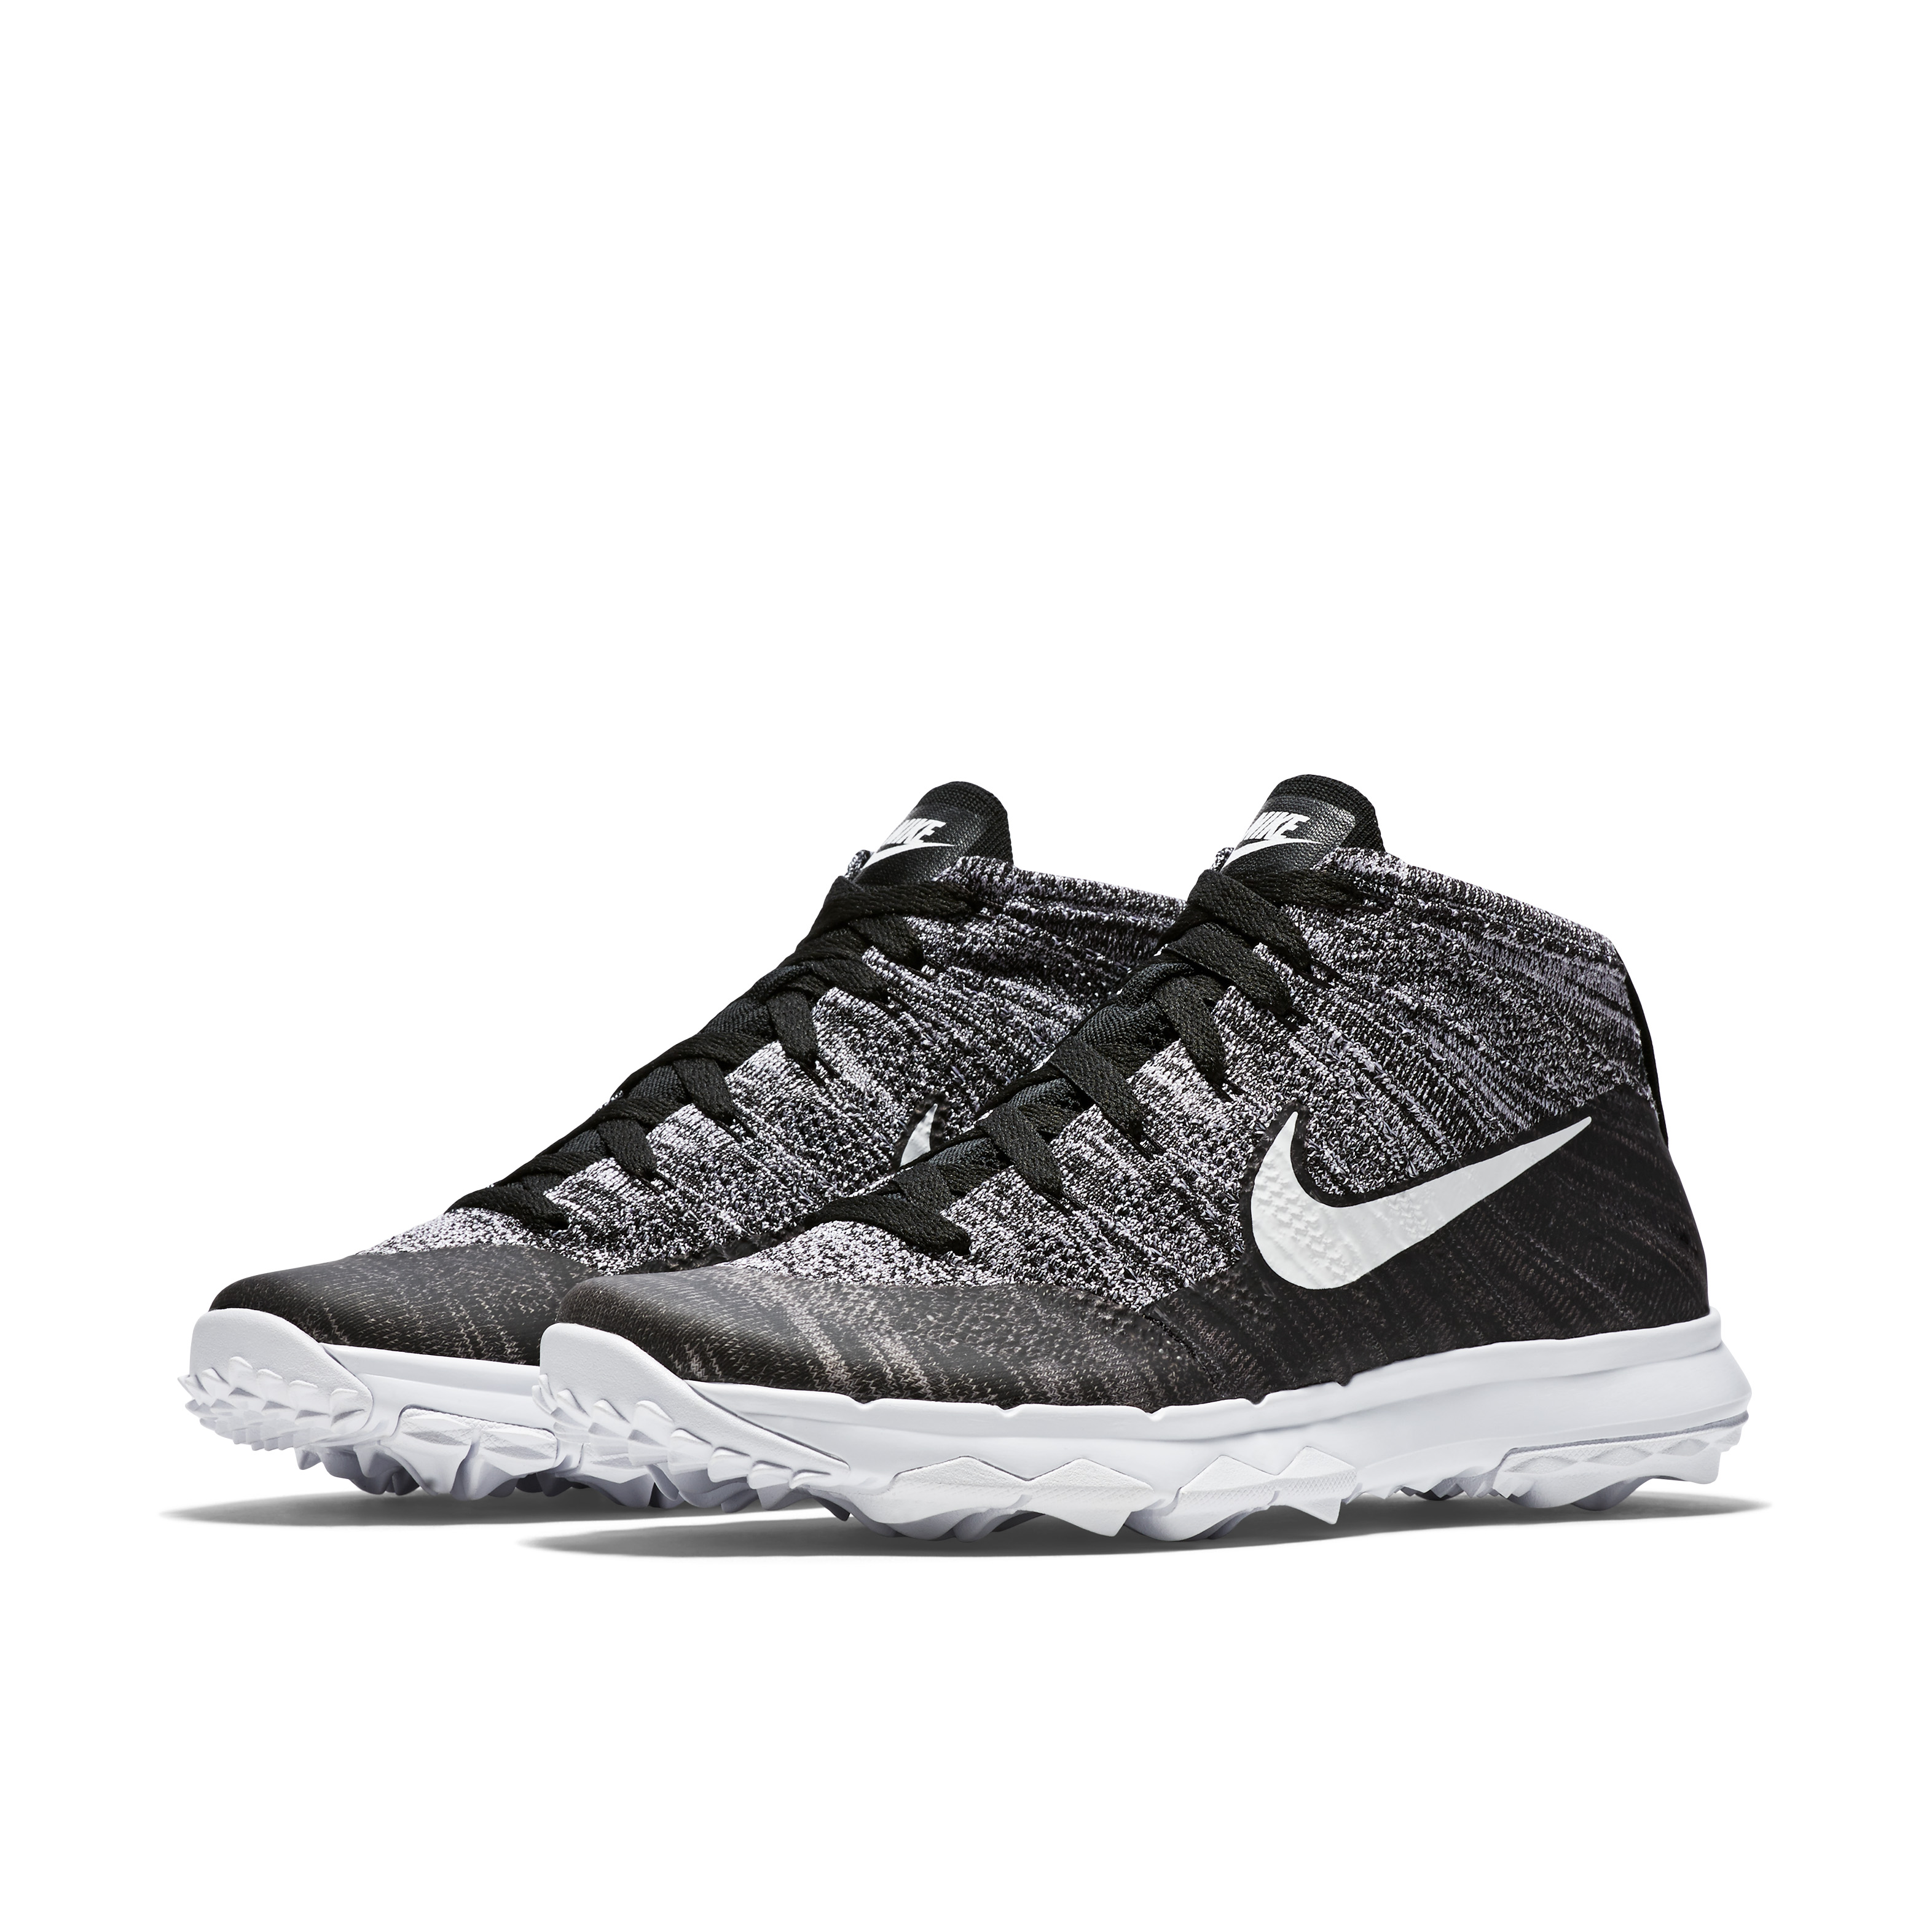 nike flyknit air max womens reviews of womens golf clubs